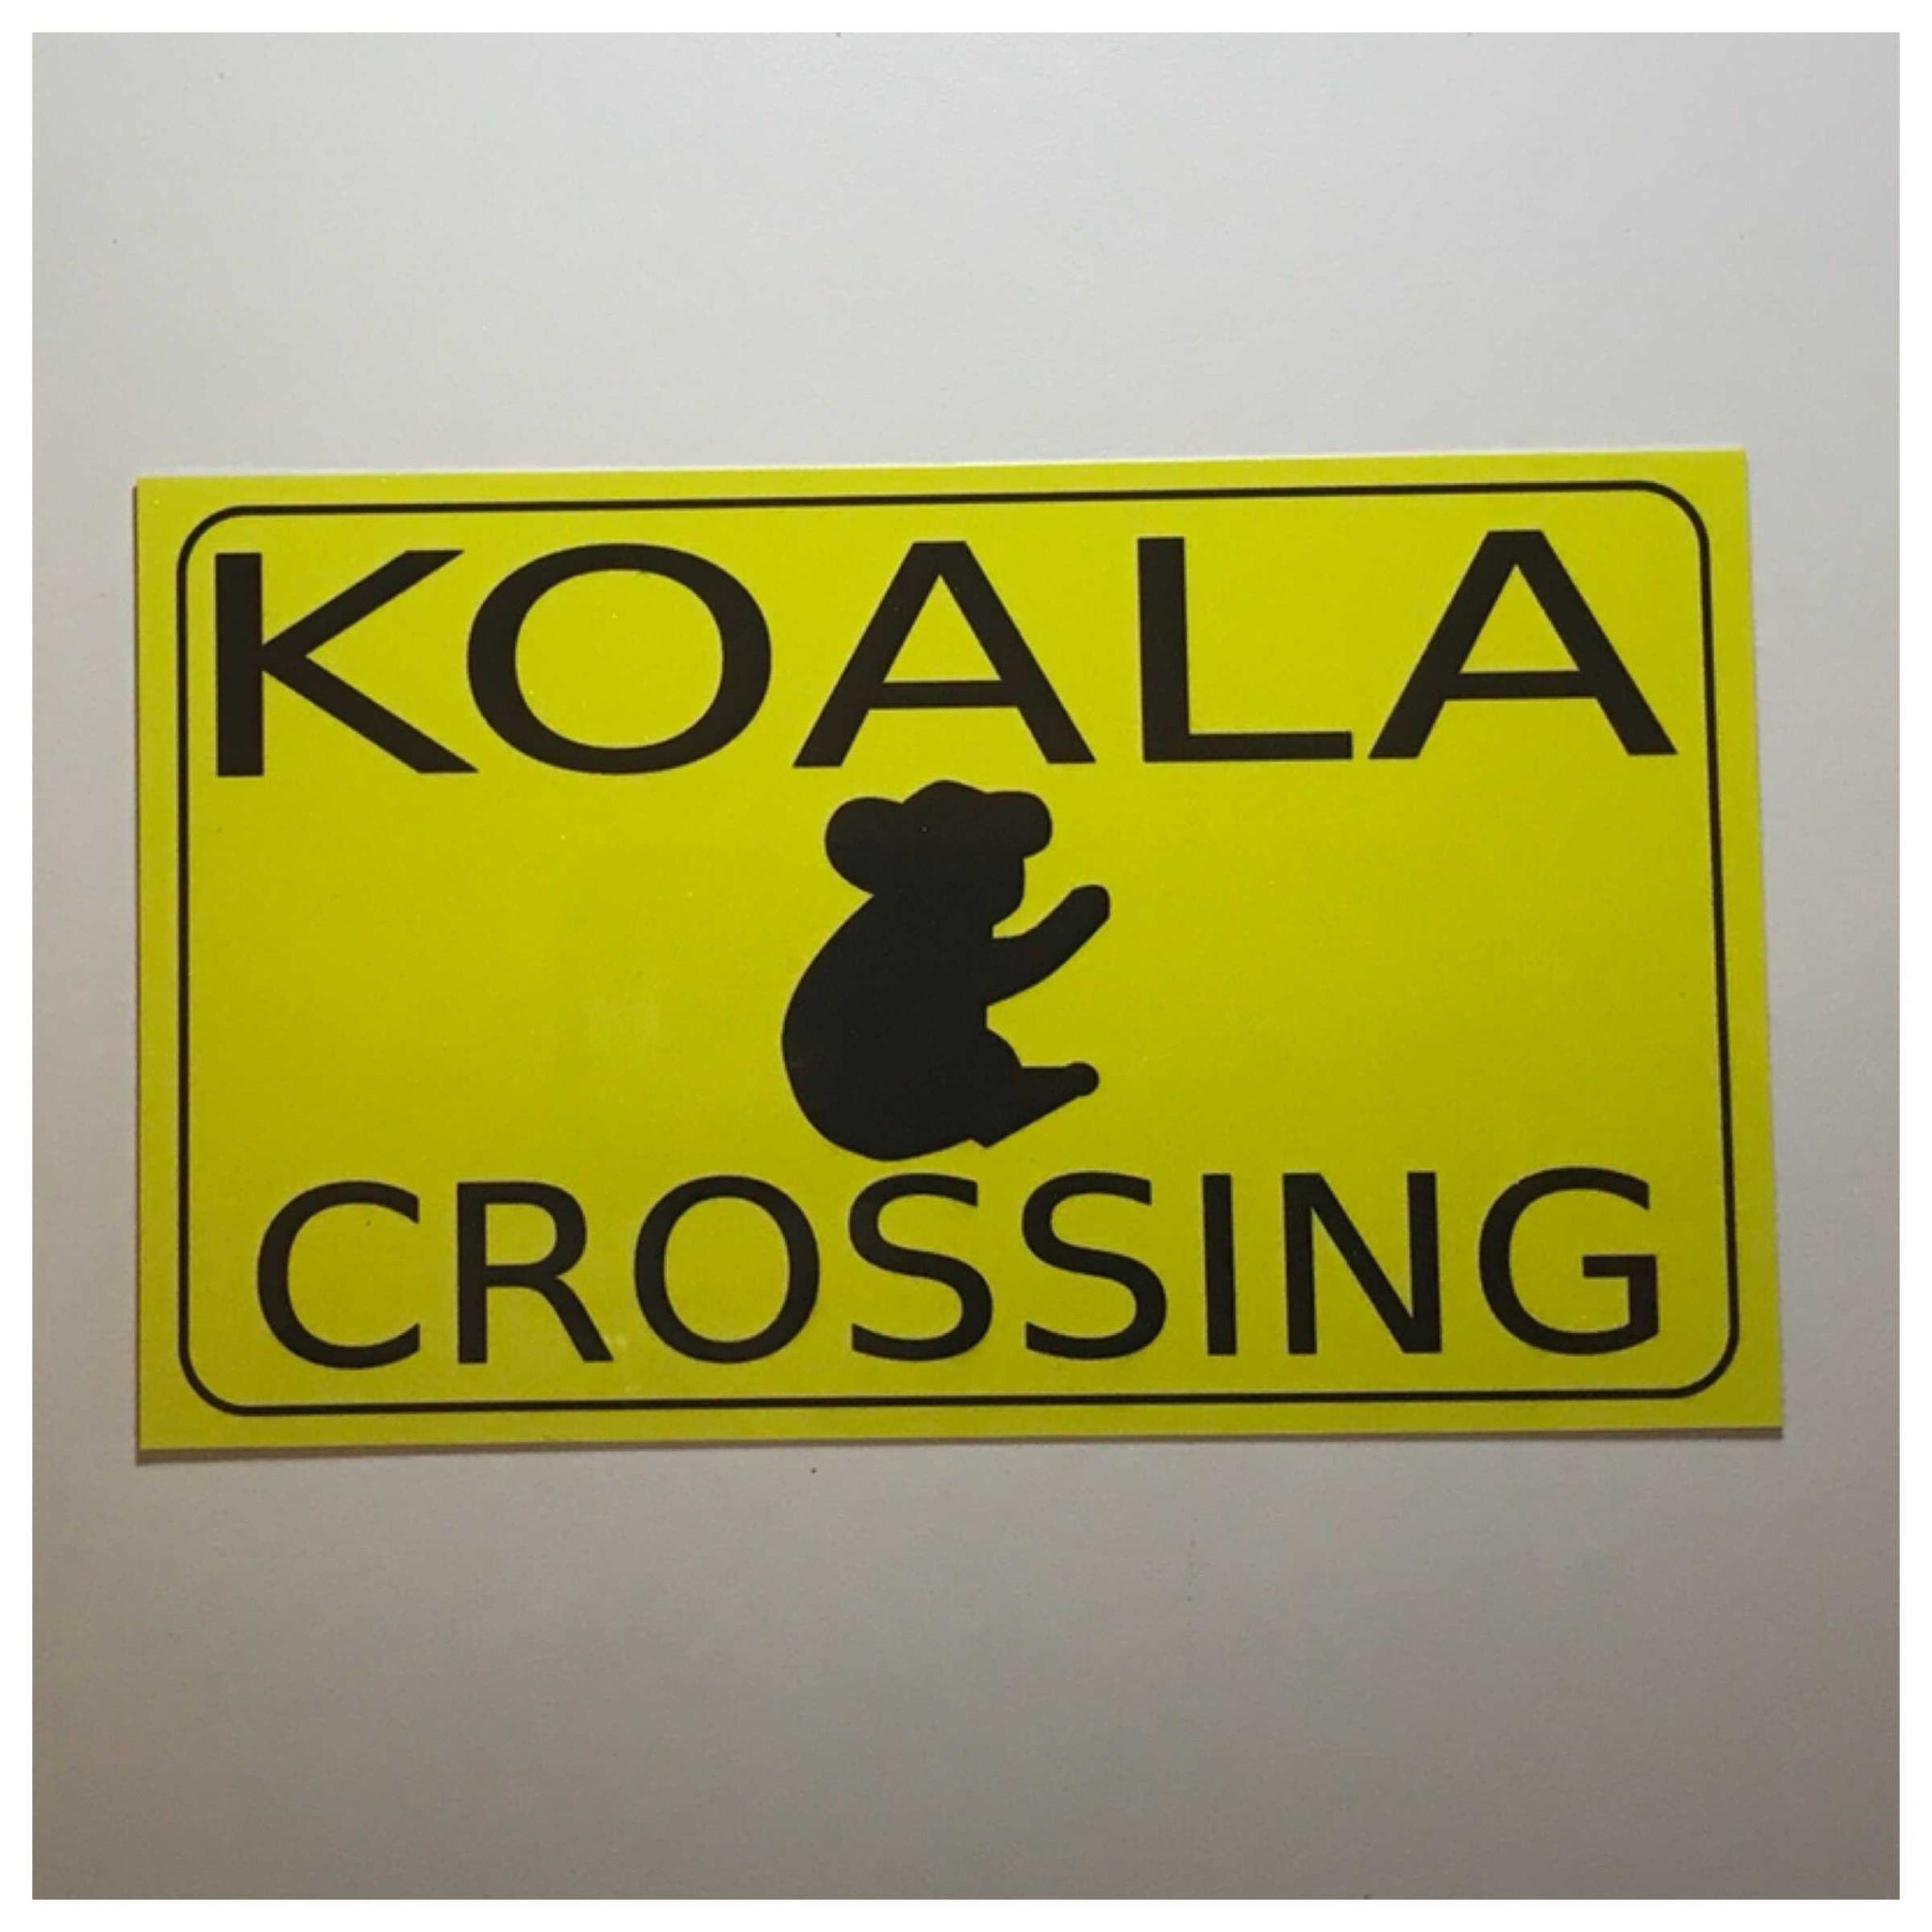 Koala Crossing Sign - The Renmy Store